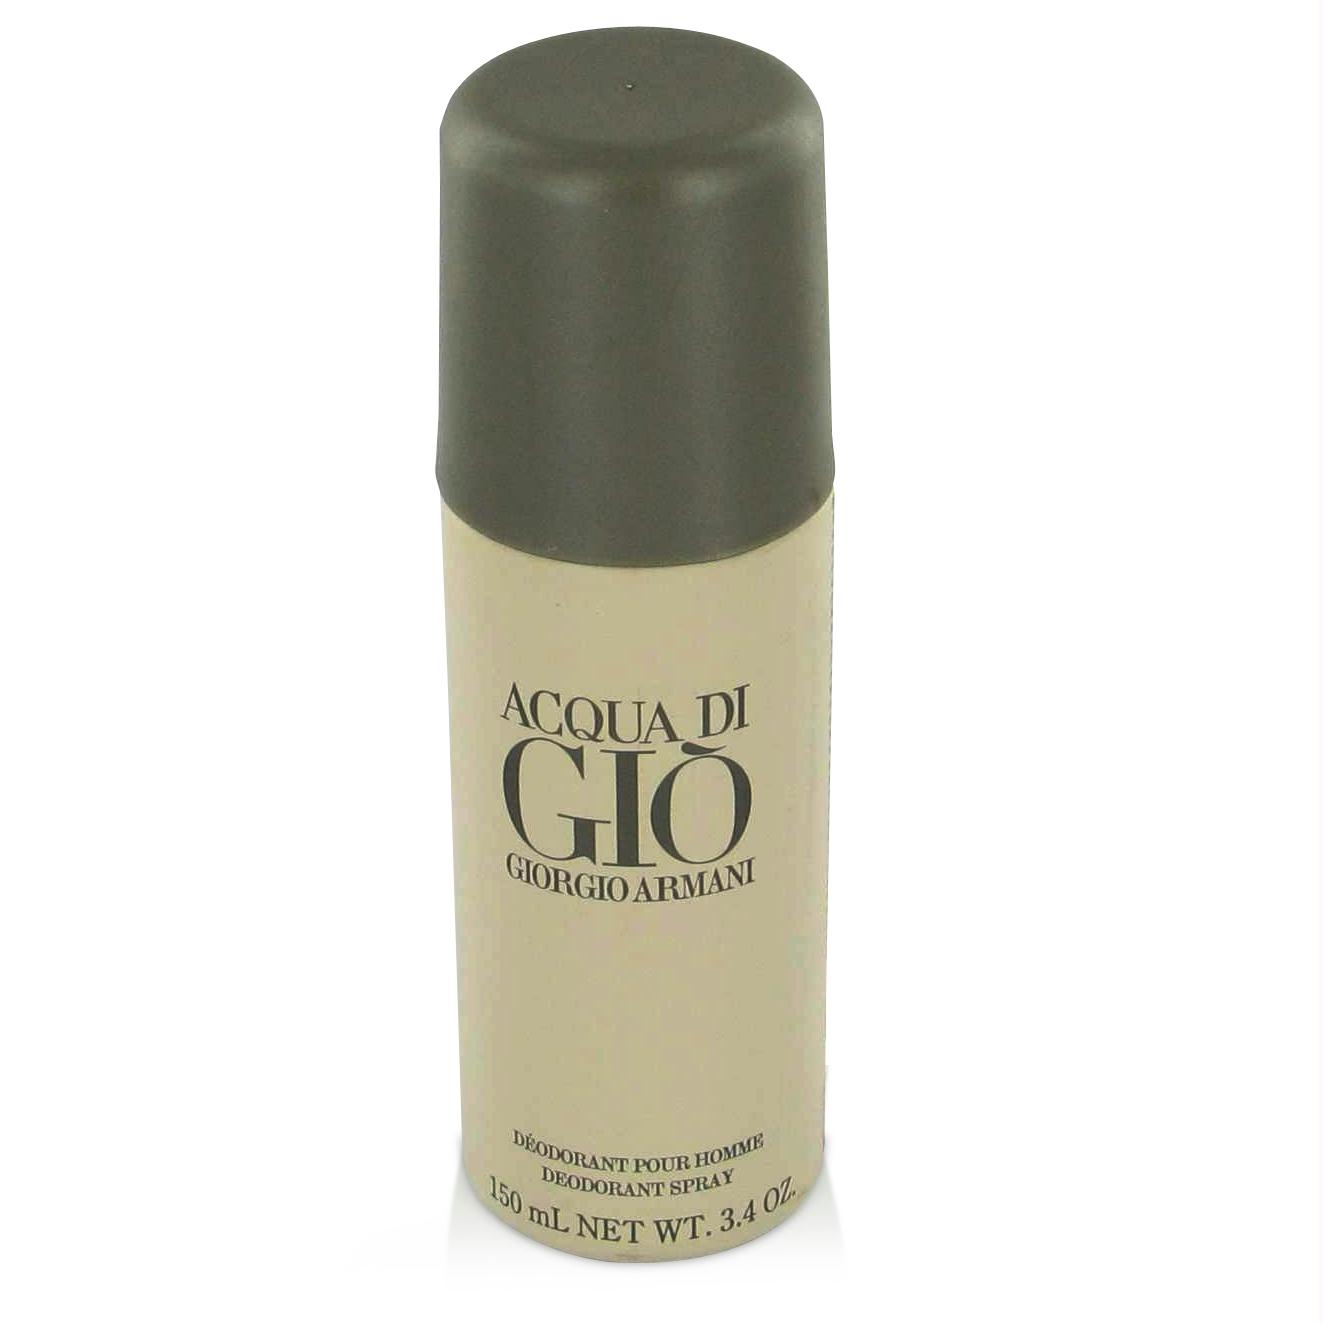 ACQUA DI GIO by Giorgio Armani Deodorant Spray Can 3.4 oz